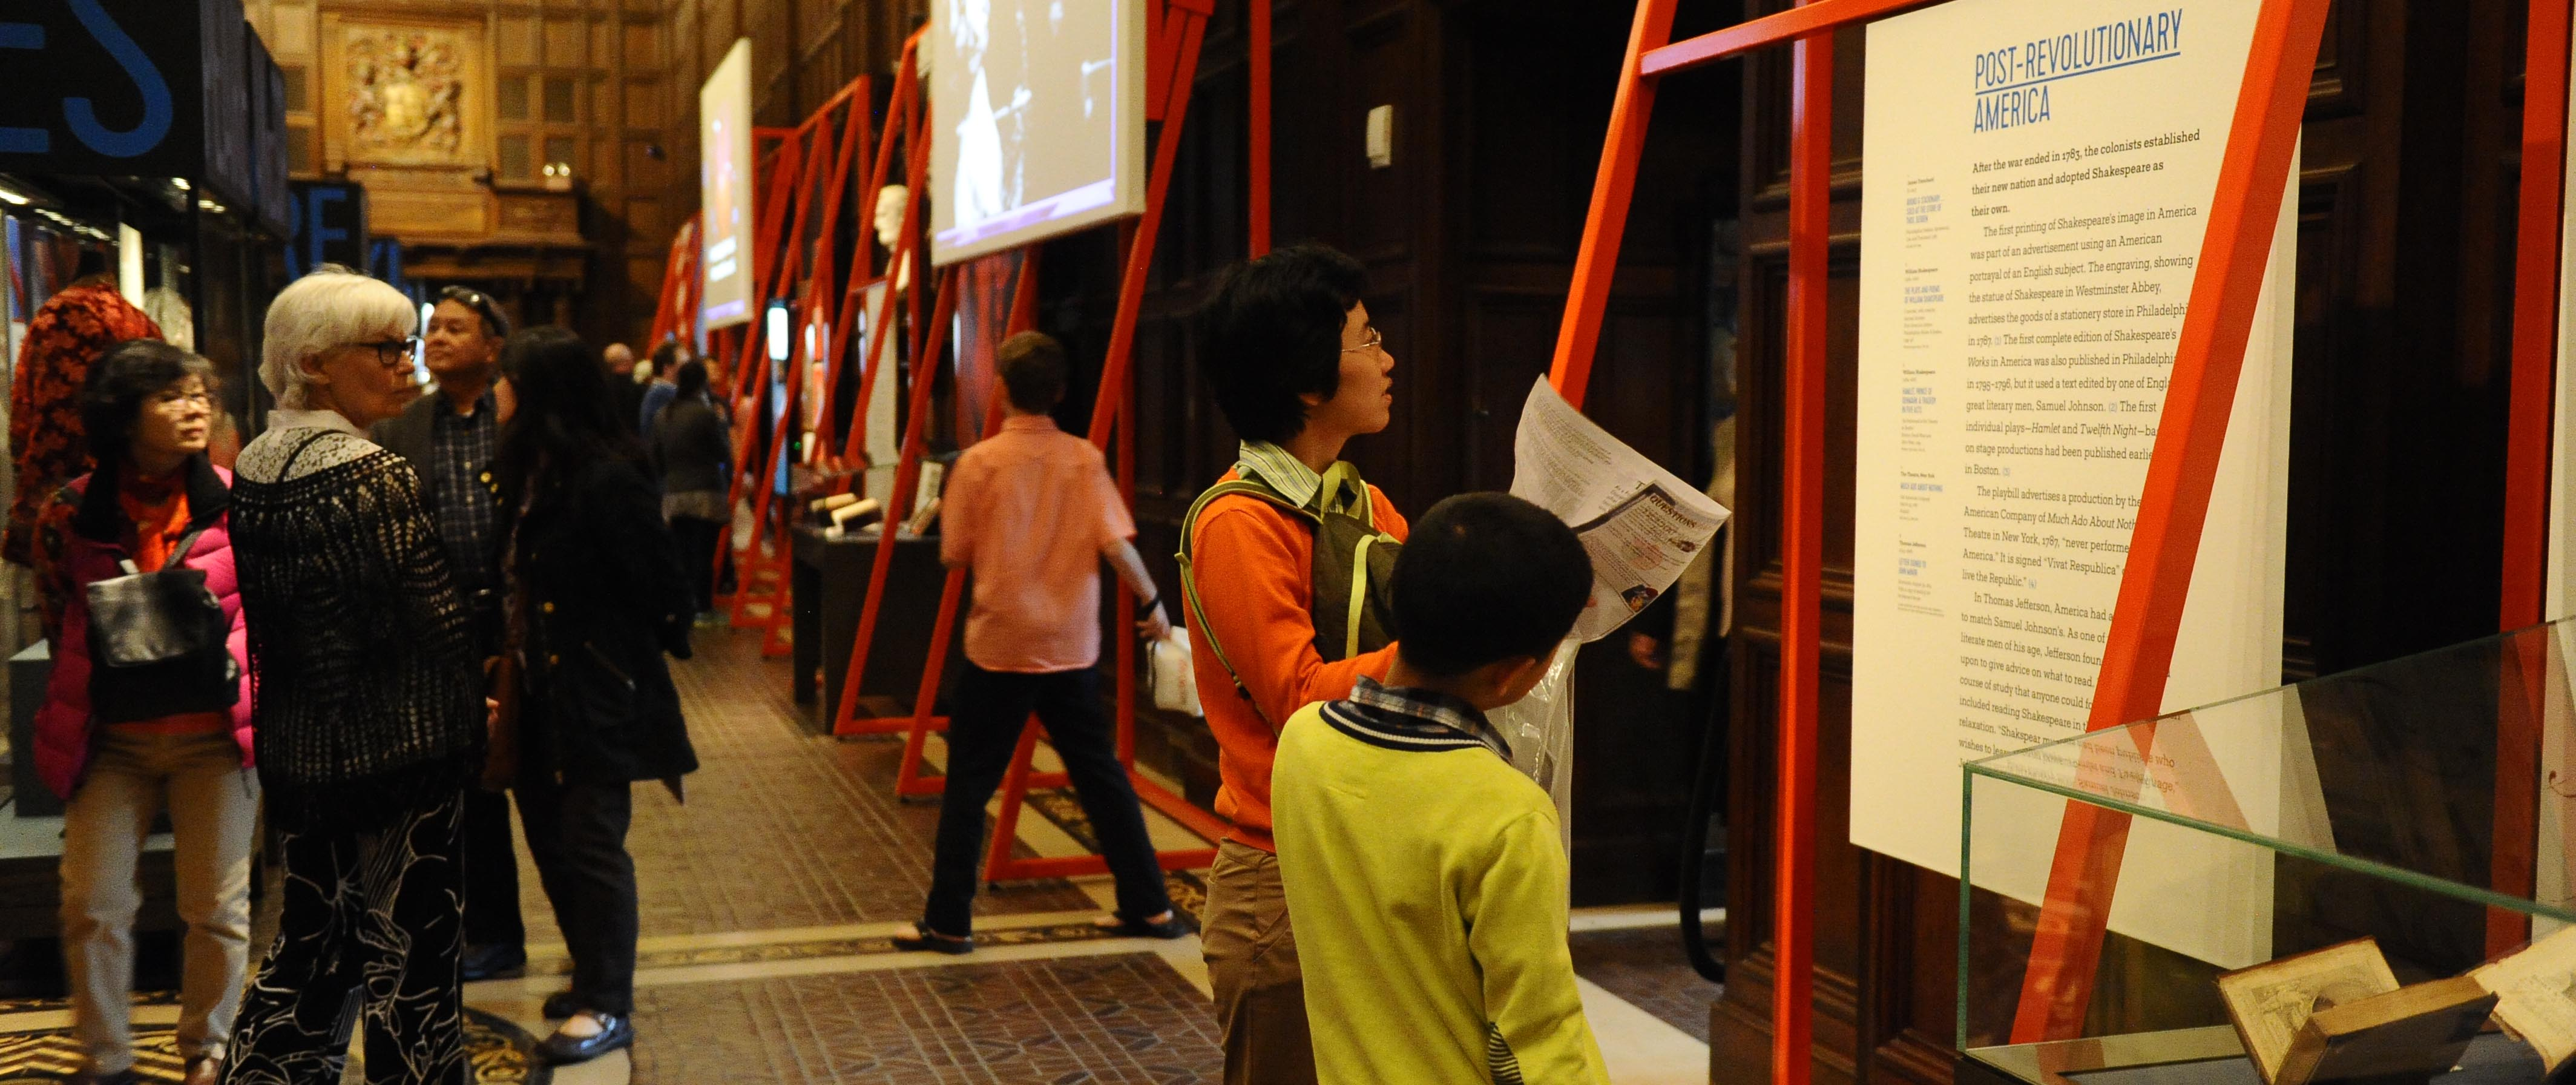 Visitors looking at an exhibition in the Folger Great Hall in 2016